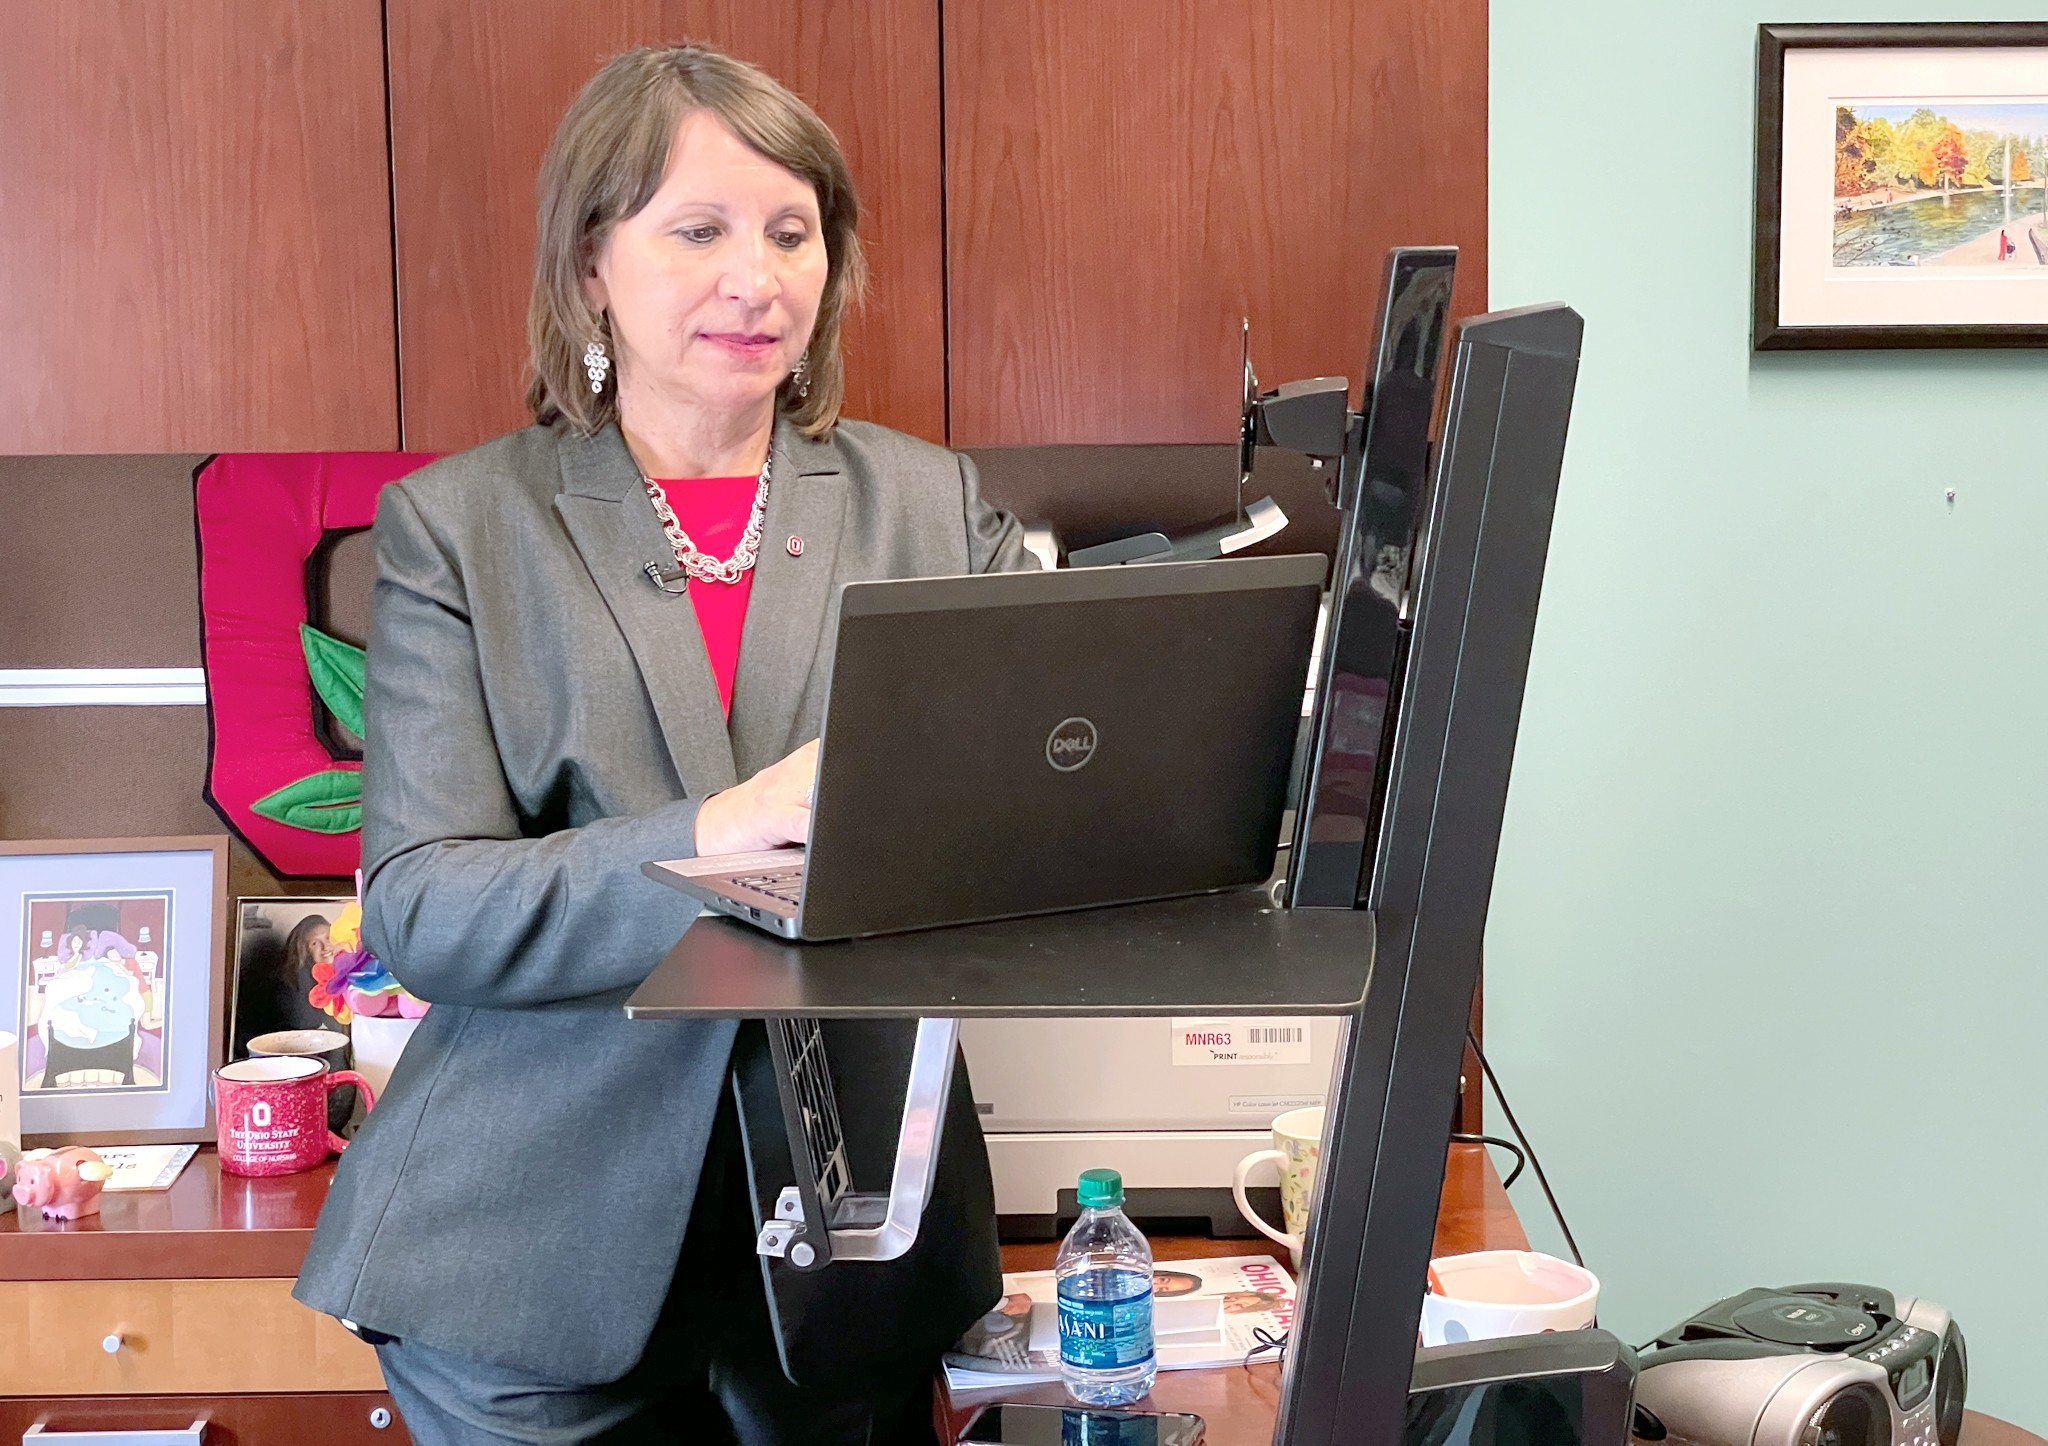 Ohio State chief wellness officer Bernadette Melnyk led a survey that found depression, anxiety and burnout levels are on the rise among students as they prepare to return to campus. (Photo courtesy of The Ohio State University Wexner Medical Center)